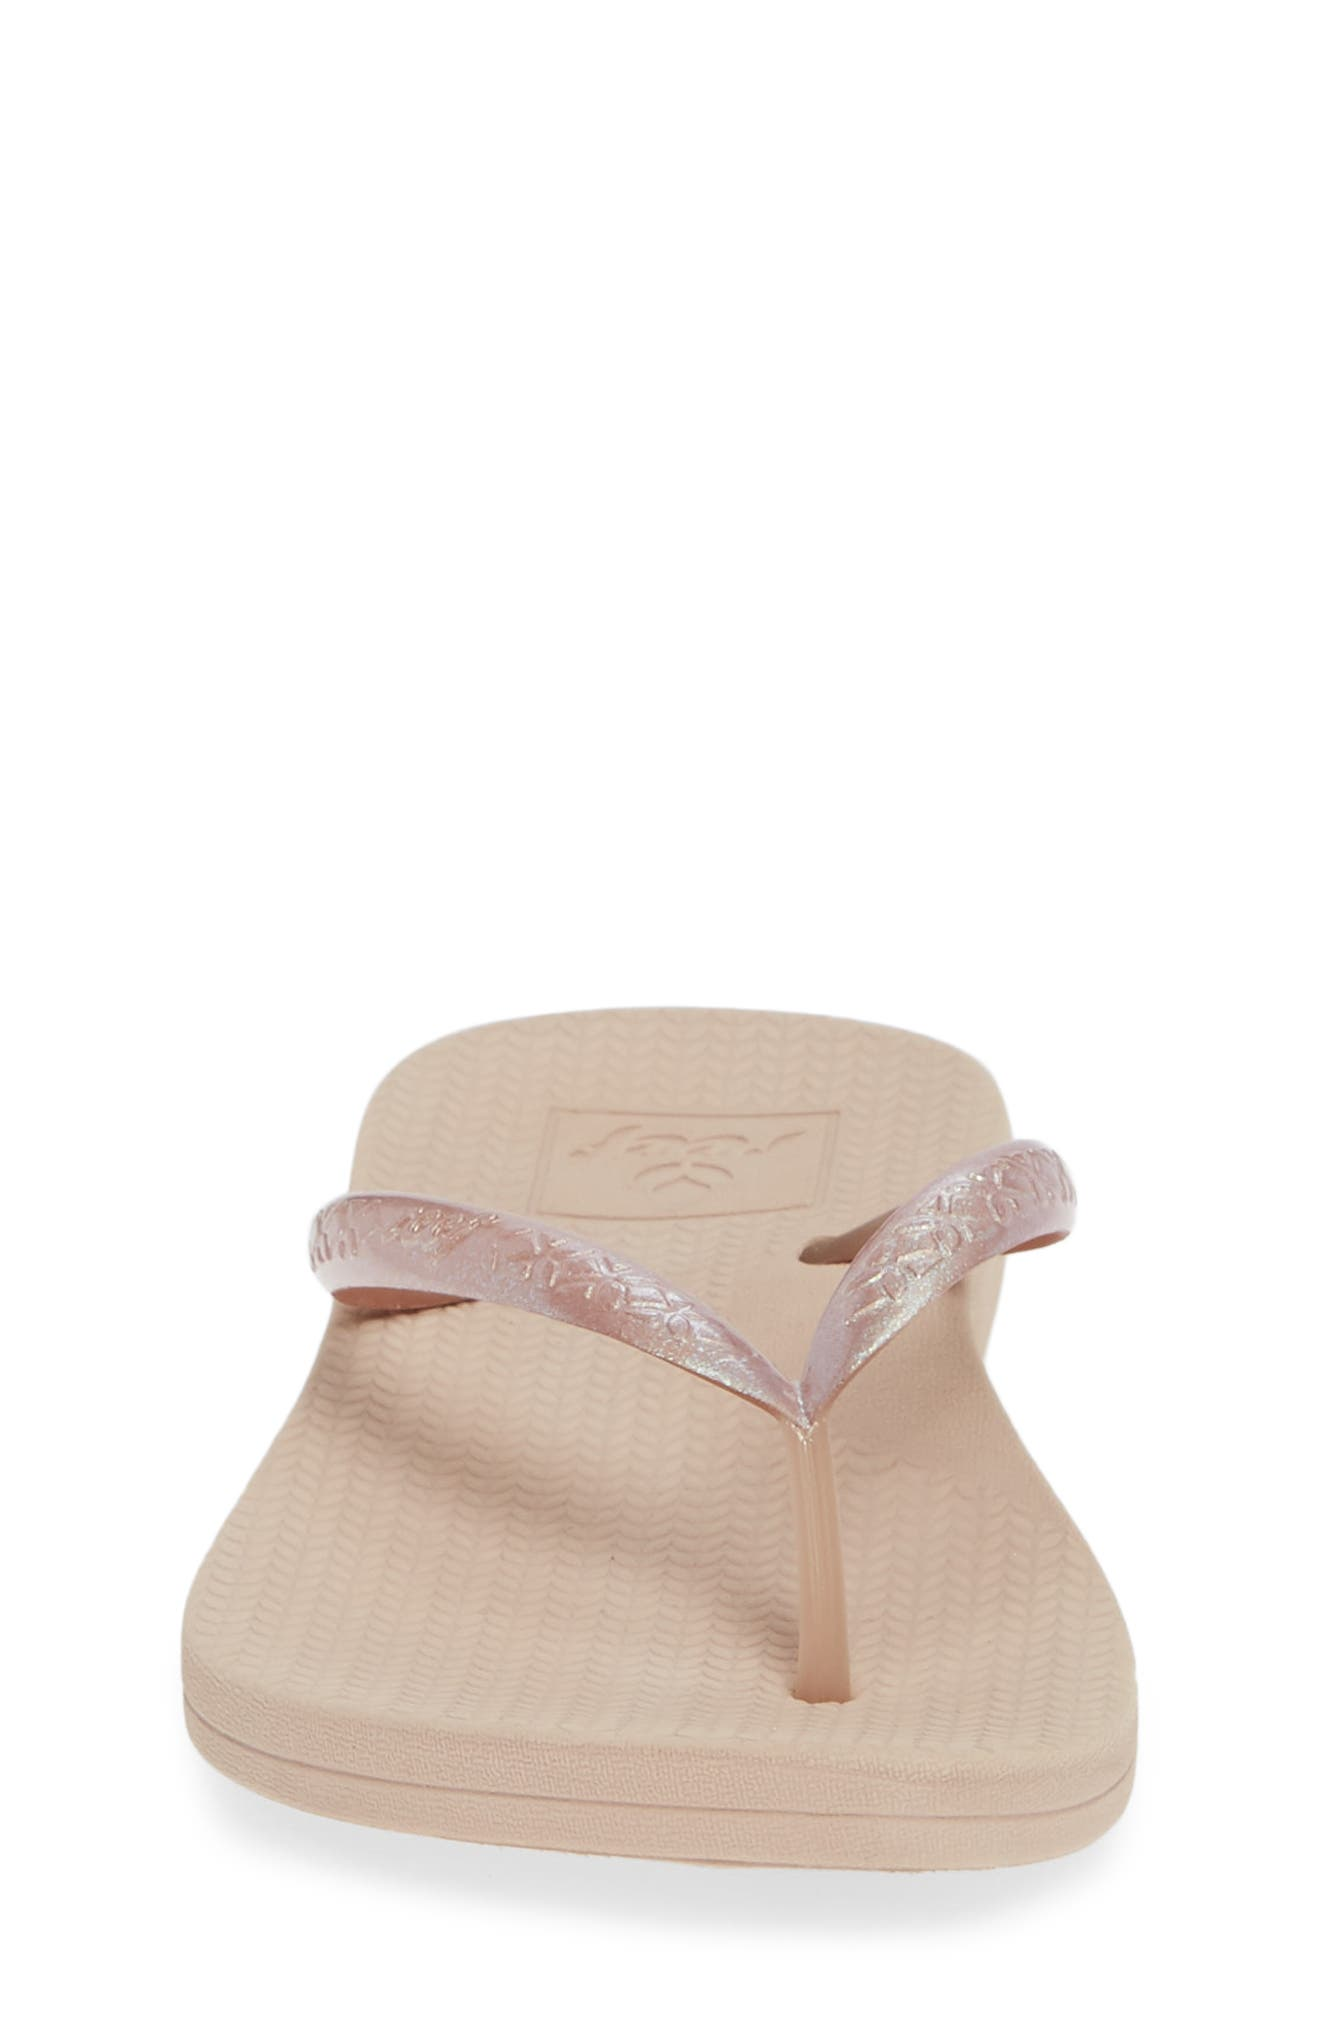 REEF, Escape Lux Metals Flip Flop, Alternate thumbnail 4, color, ROSE GOLD